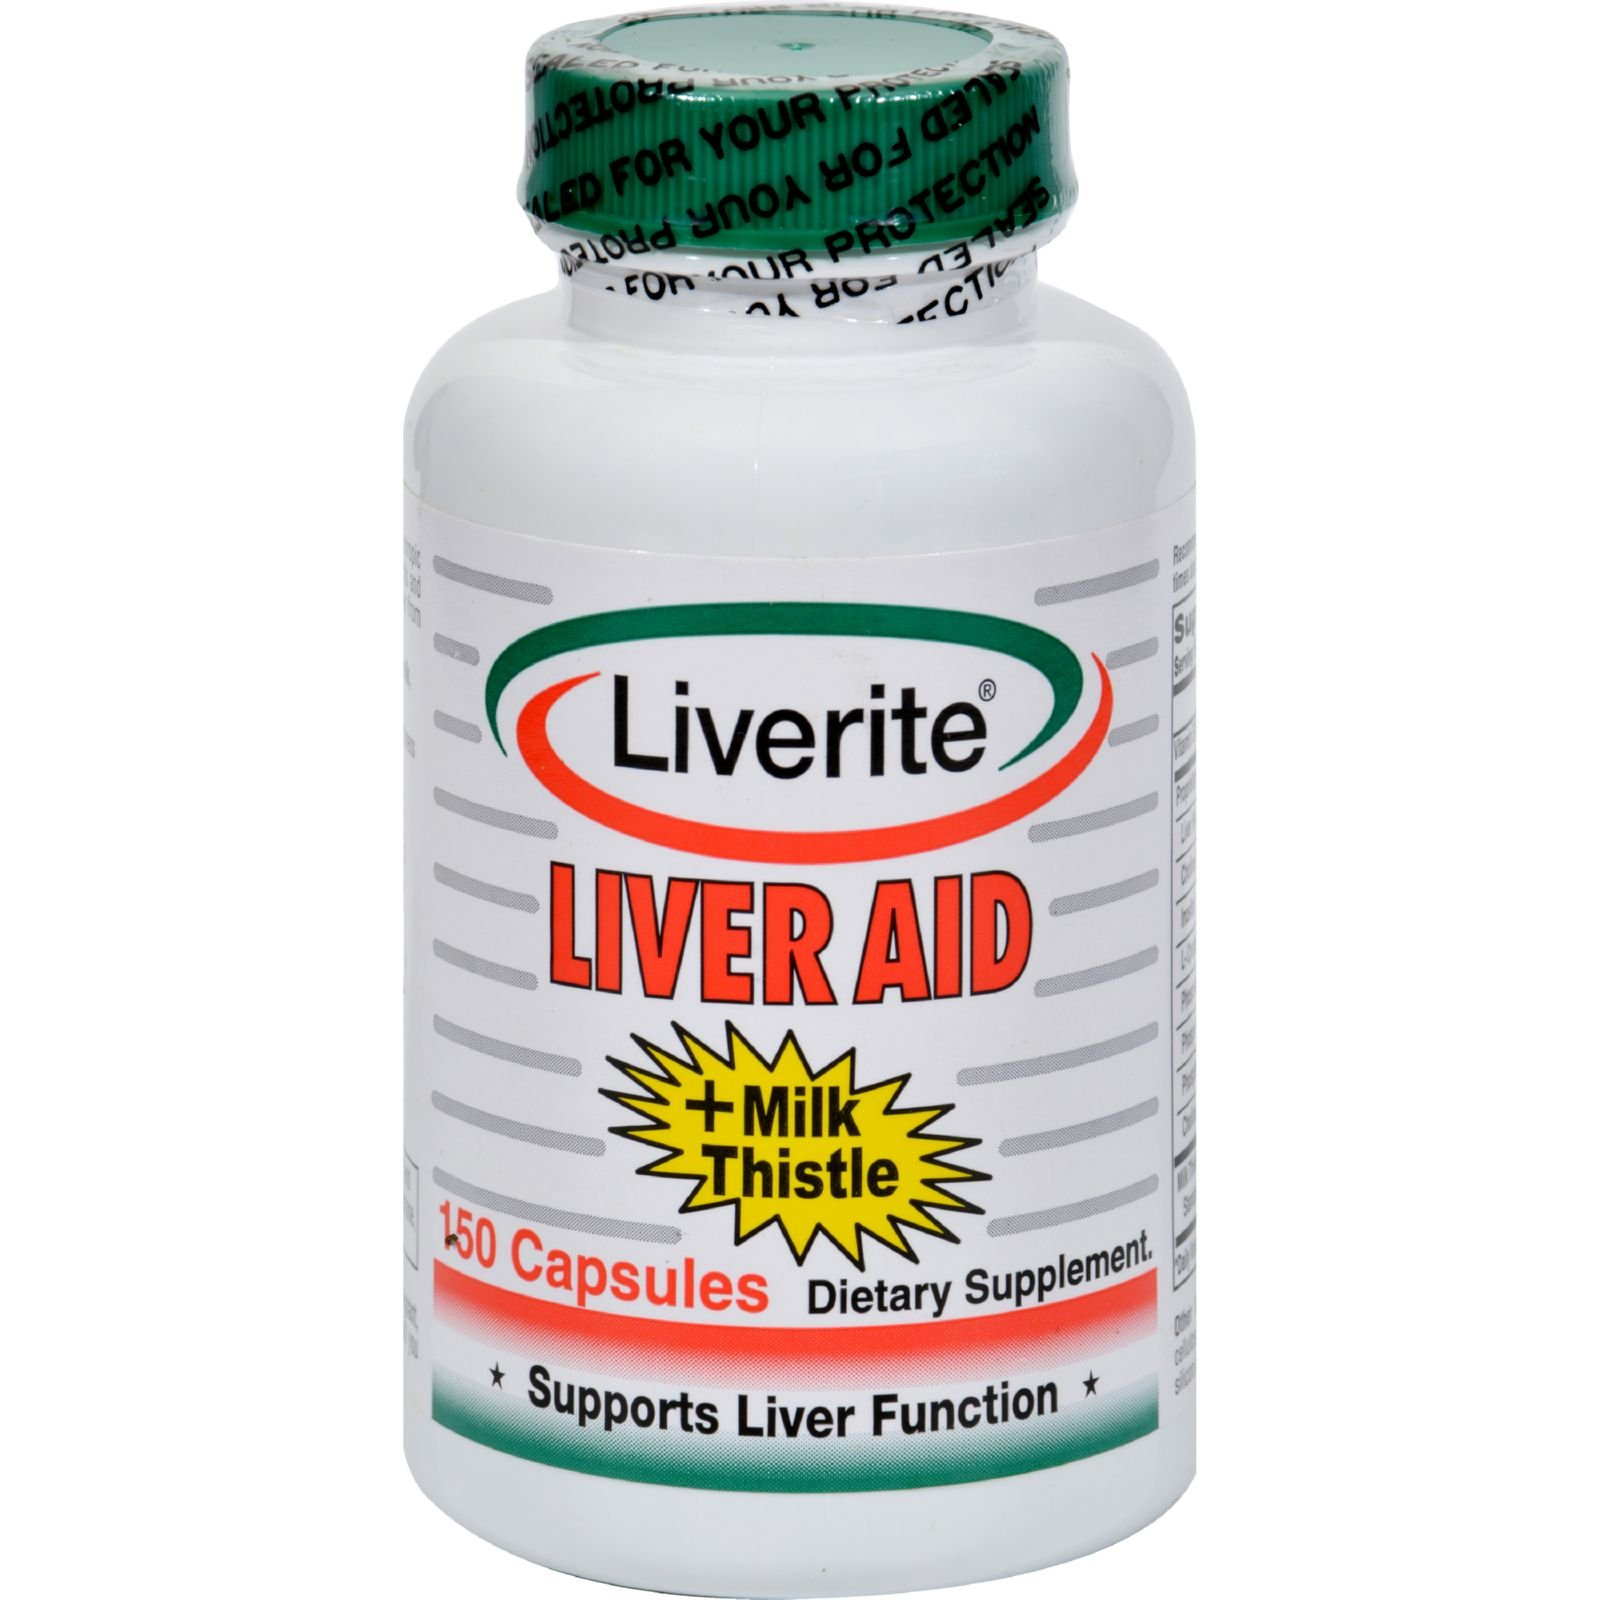 Liverite Liver Aid Plus Milk Thistle - Supports Liver Function - Gluten Free - Dairy Free - 150 Capsules (Pack of 2) by LIVERITE